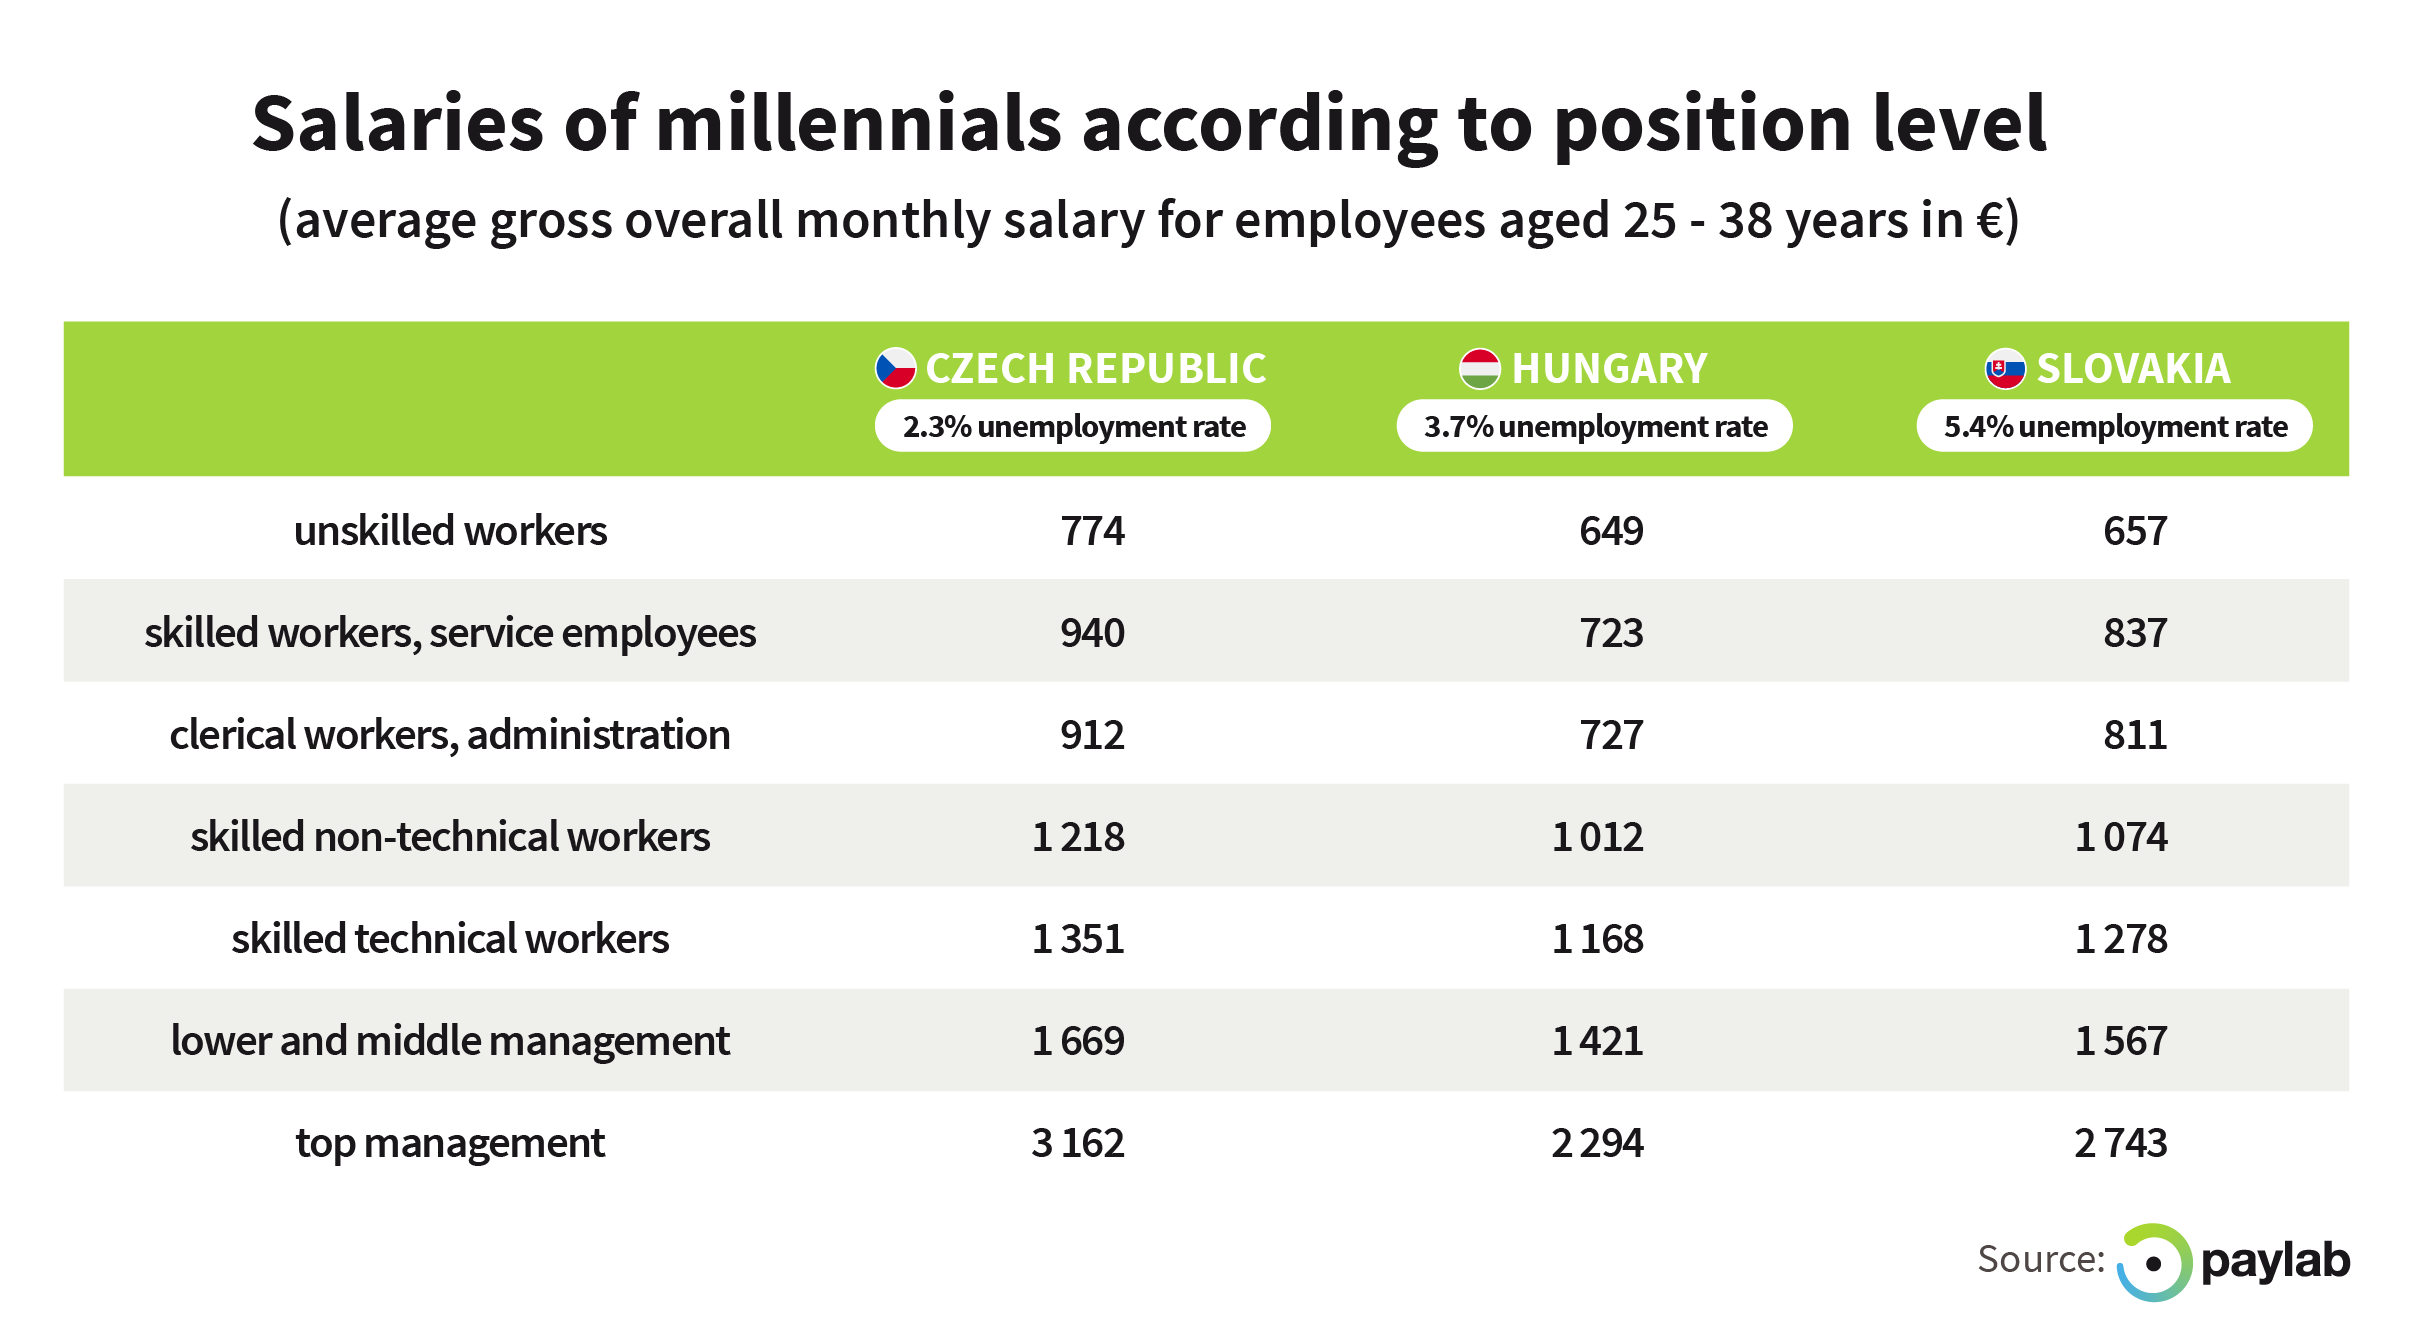 https://storage.googleapis.com/paylab/images/cms/2019/04/Paylab_salary_in_job_ads_salary_millennials_compensation_central_europe_Slovakia_Czech_Republic_Hungary